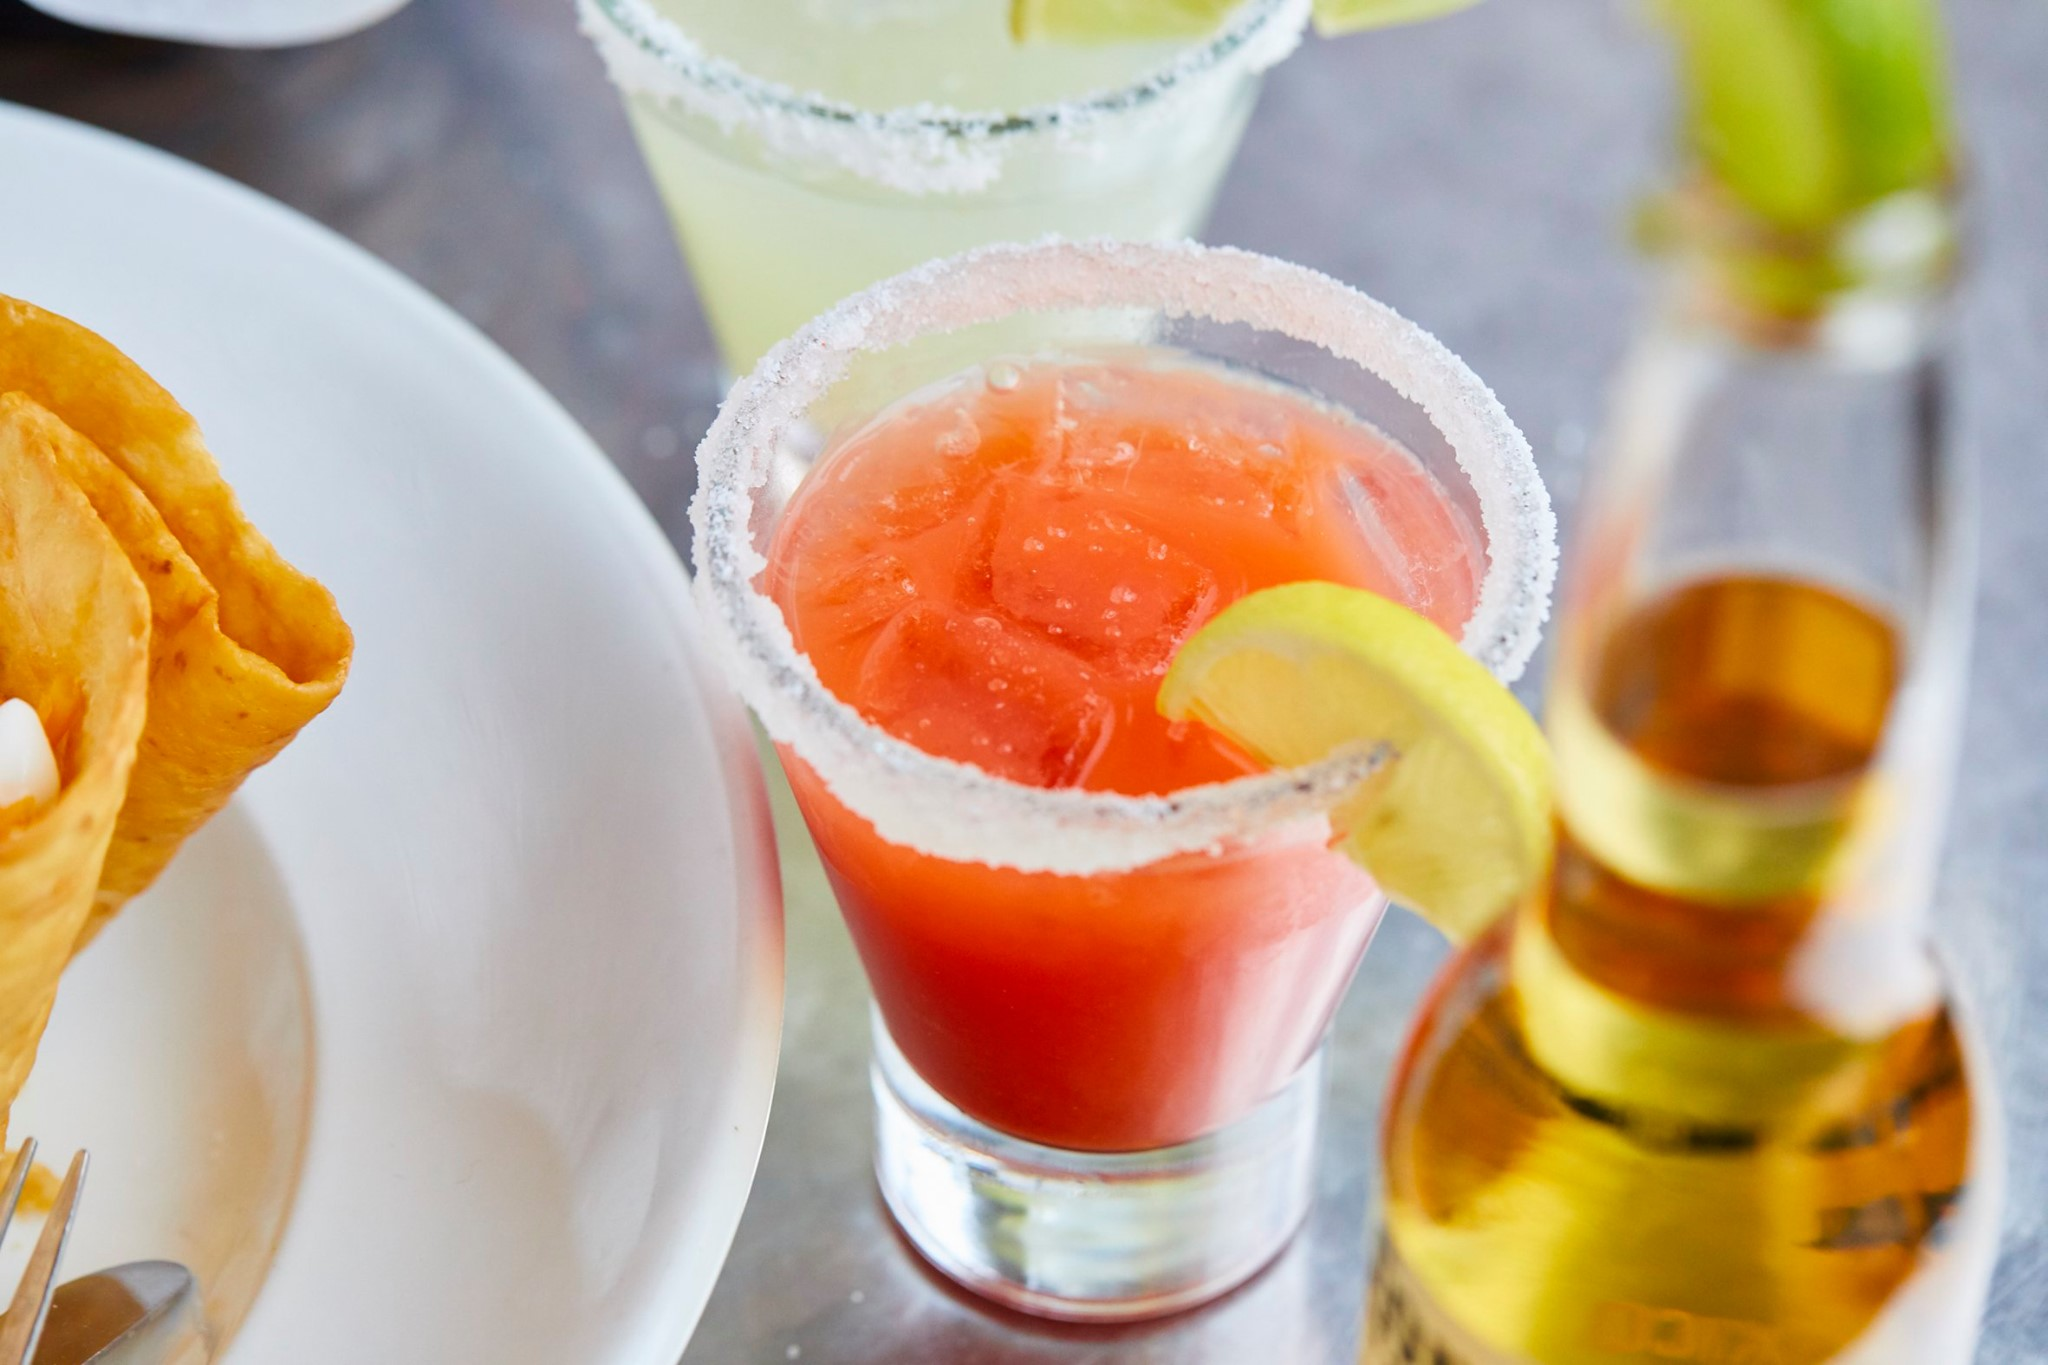 If you appreciate a quality, handcrafted Margarita then make Holt Tequila your destination